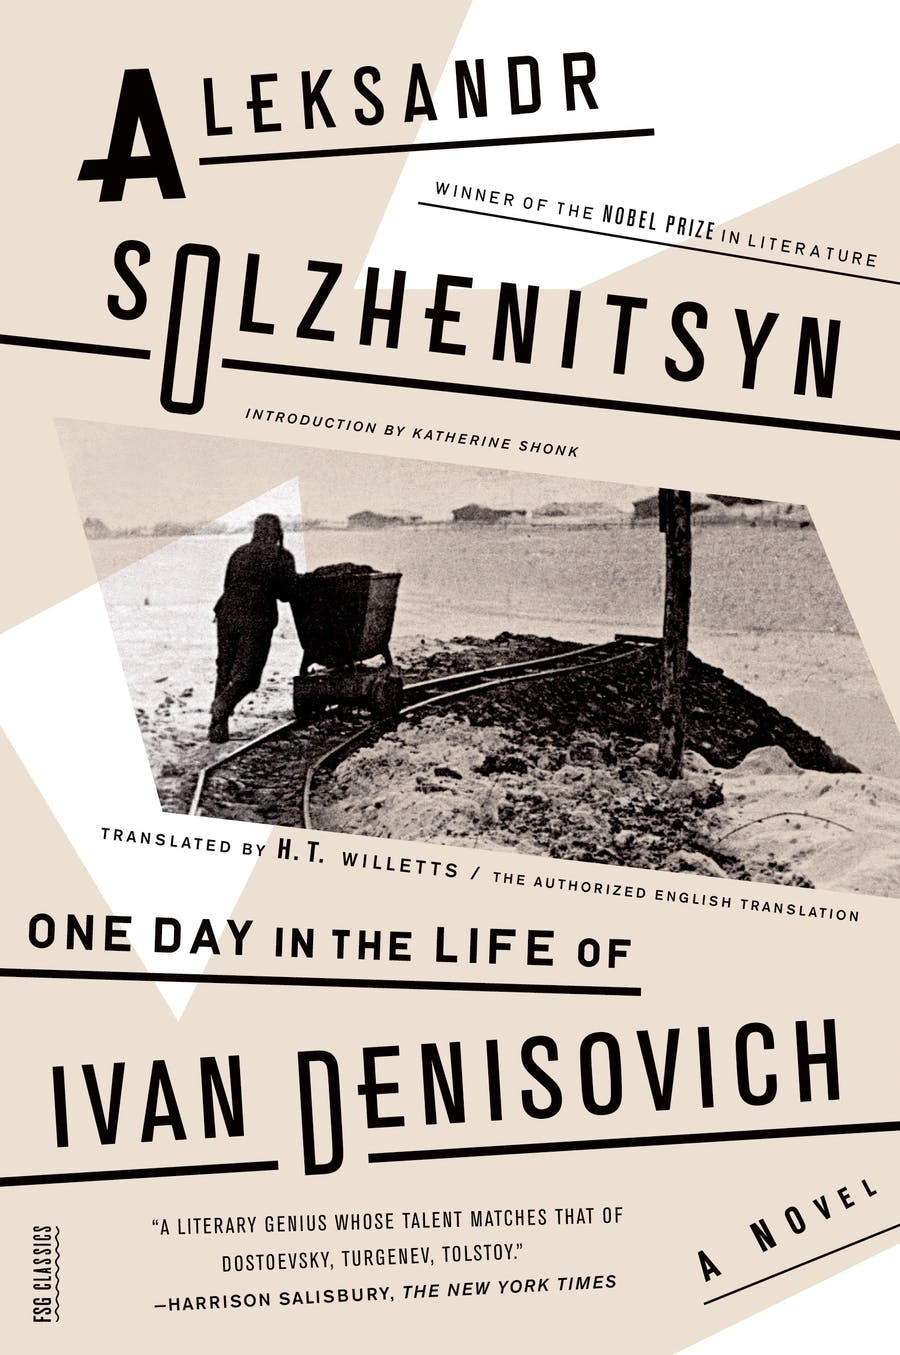 One Day in the Life of Ivan Denisovich by Aleksandr Solzhenitsyn; Translated by H. T. Willetts; Introduction by Katherine Shonk